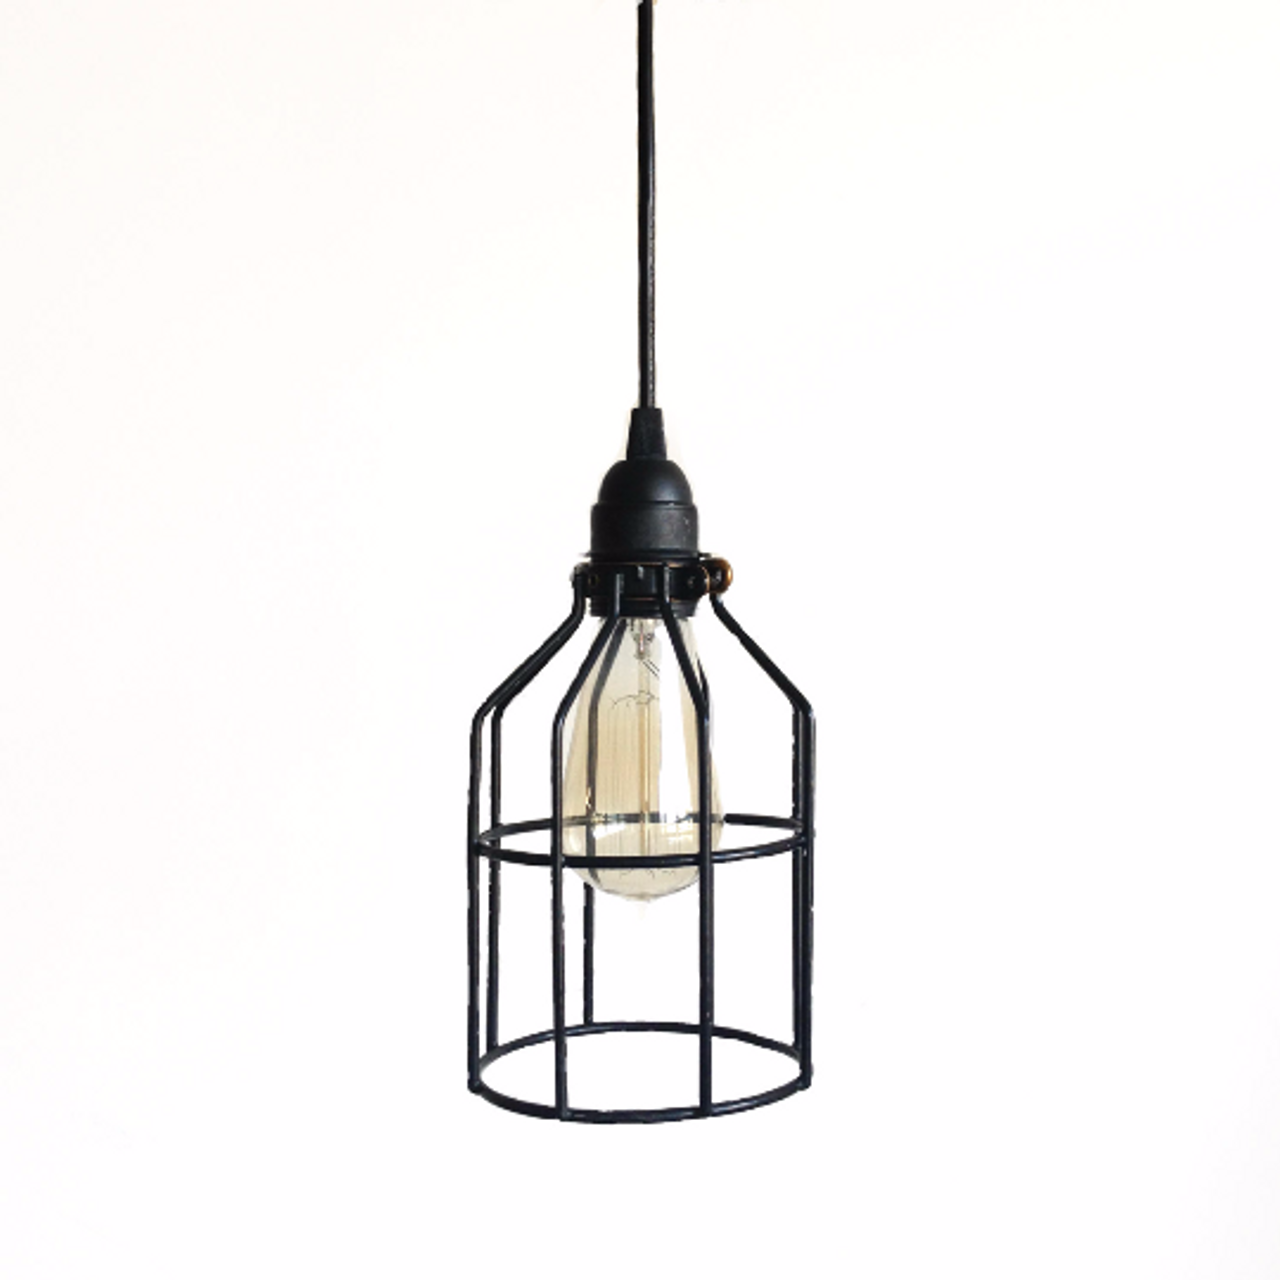 Image of: Black Cage Pendant Industrial Lighting Hanging Pendent Lights For Over Kitchen Island Or Bar Haddock Industrial